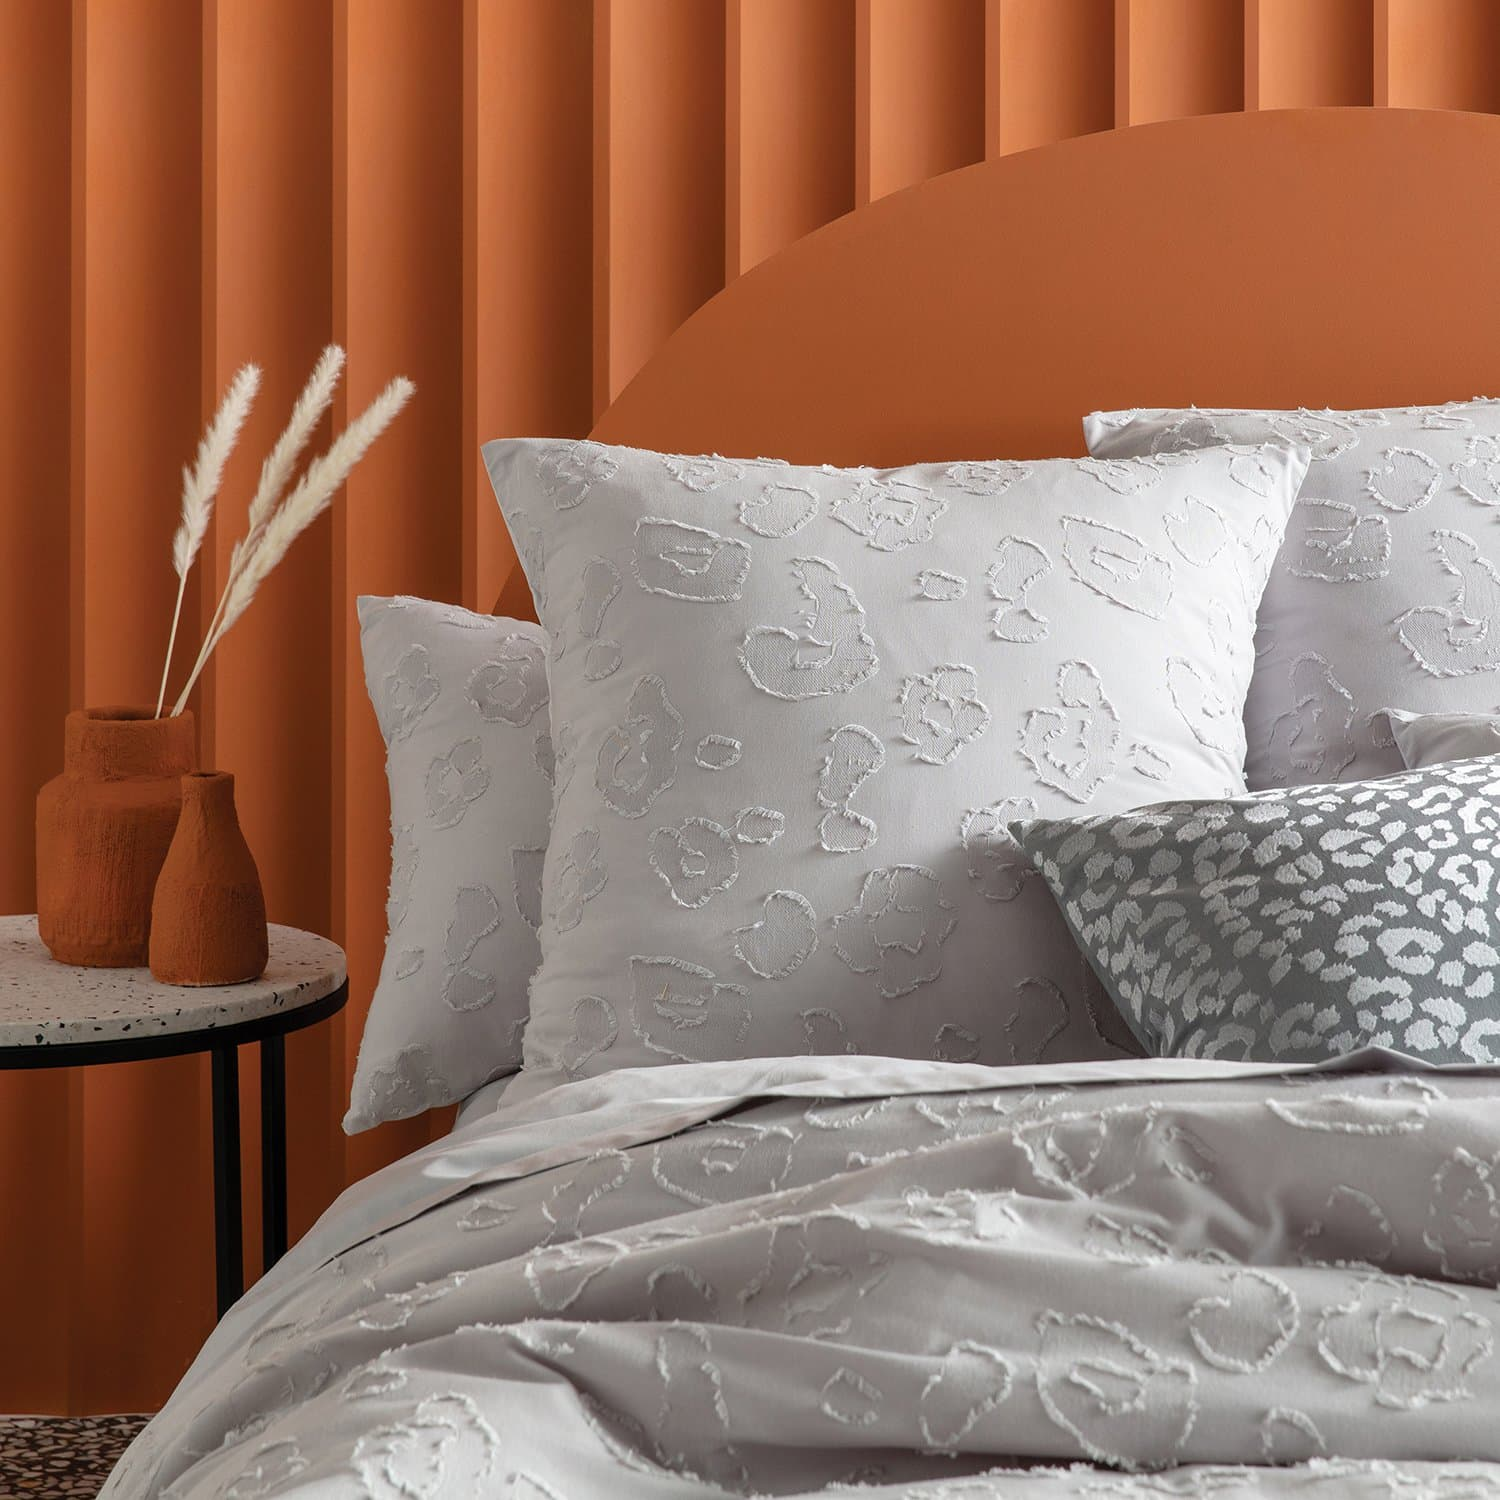 perry grey quilt cover set from KAS in orange bedroom